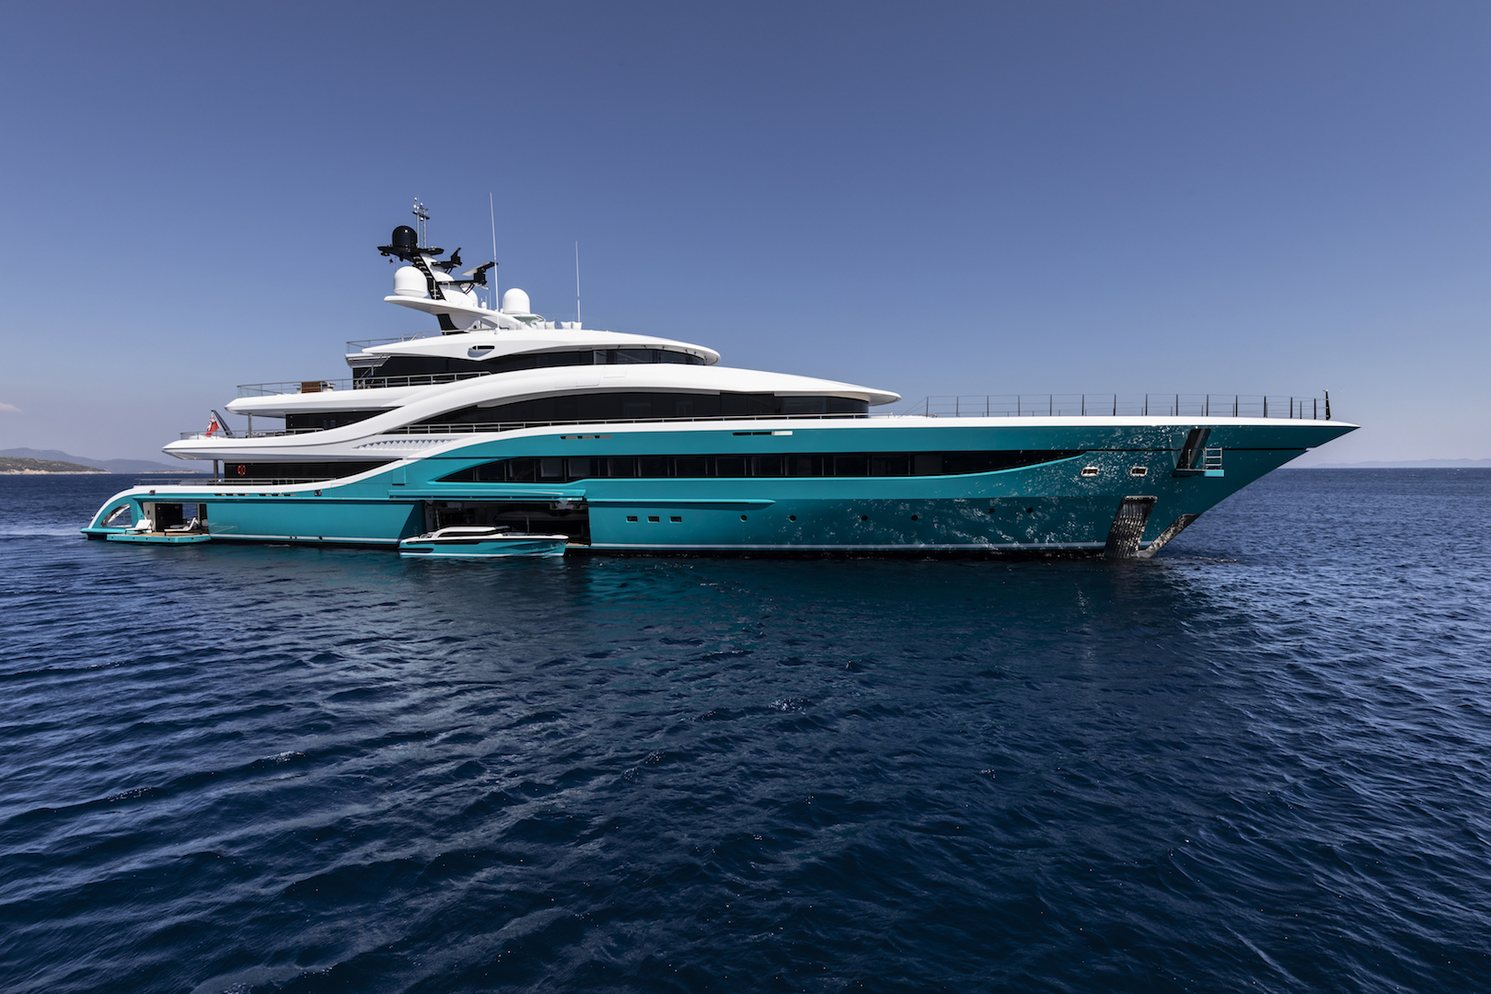 motor yacht GO anchored soon after launch from Turquoise shipyard